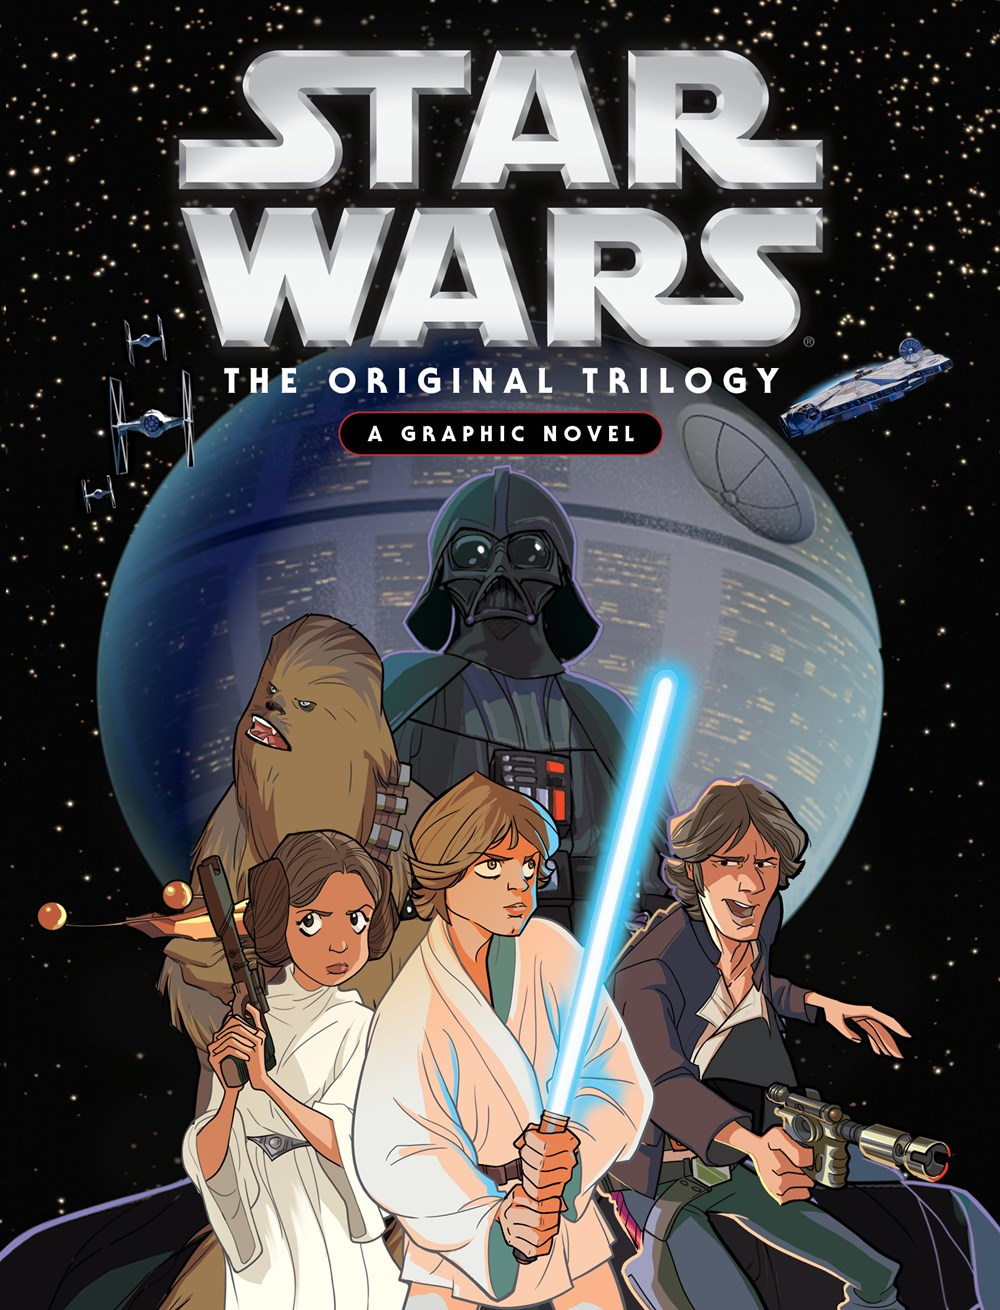 Star wars the original trilogy a graphic novel wookieepedia star wars the original trilogy a graphic novel wookieepedia fandom powered by wikia ccuart Images